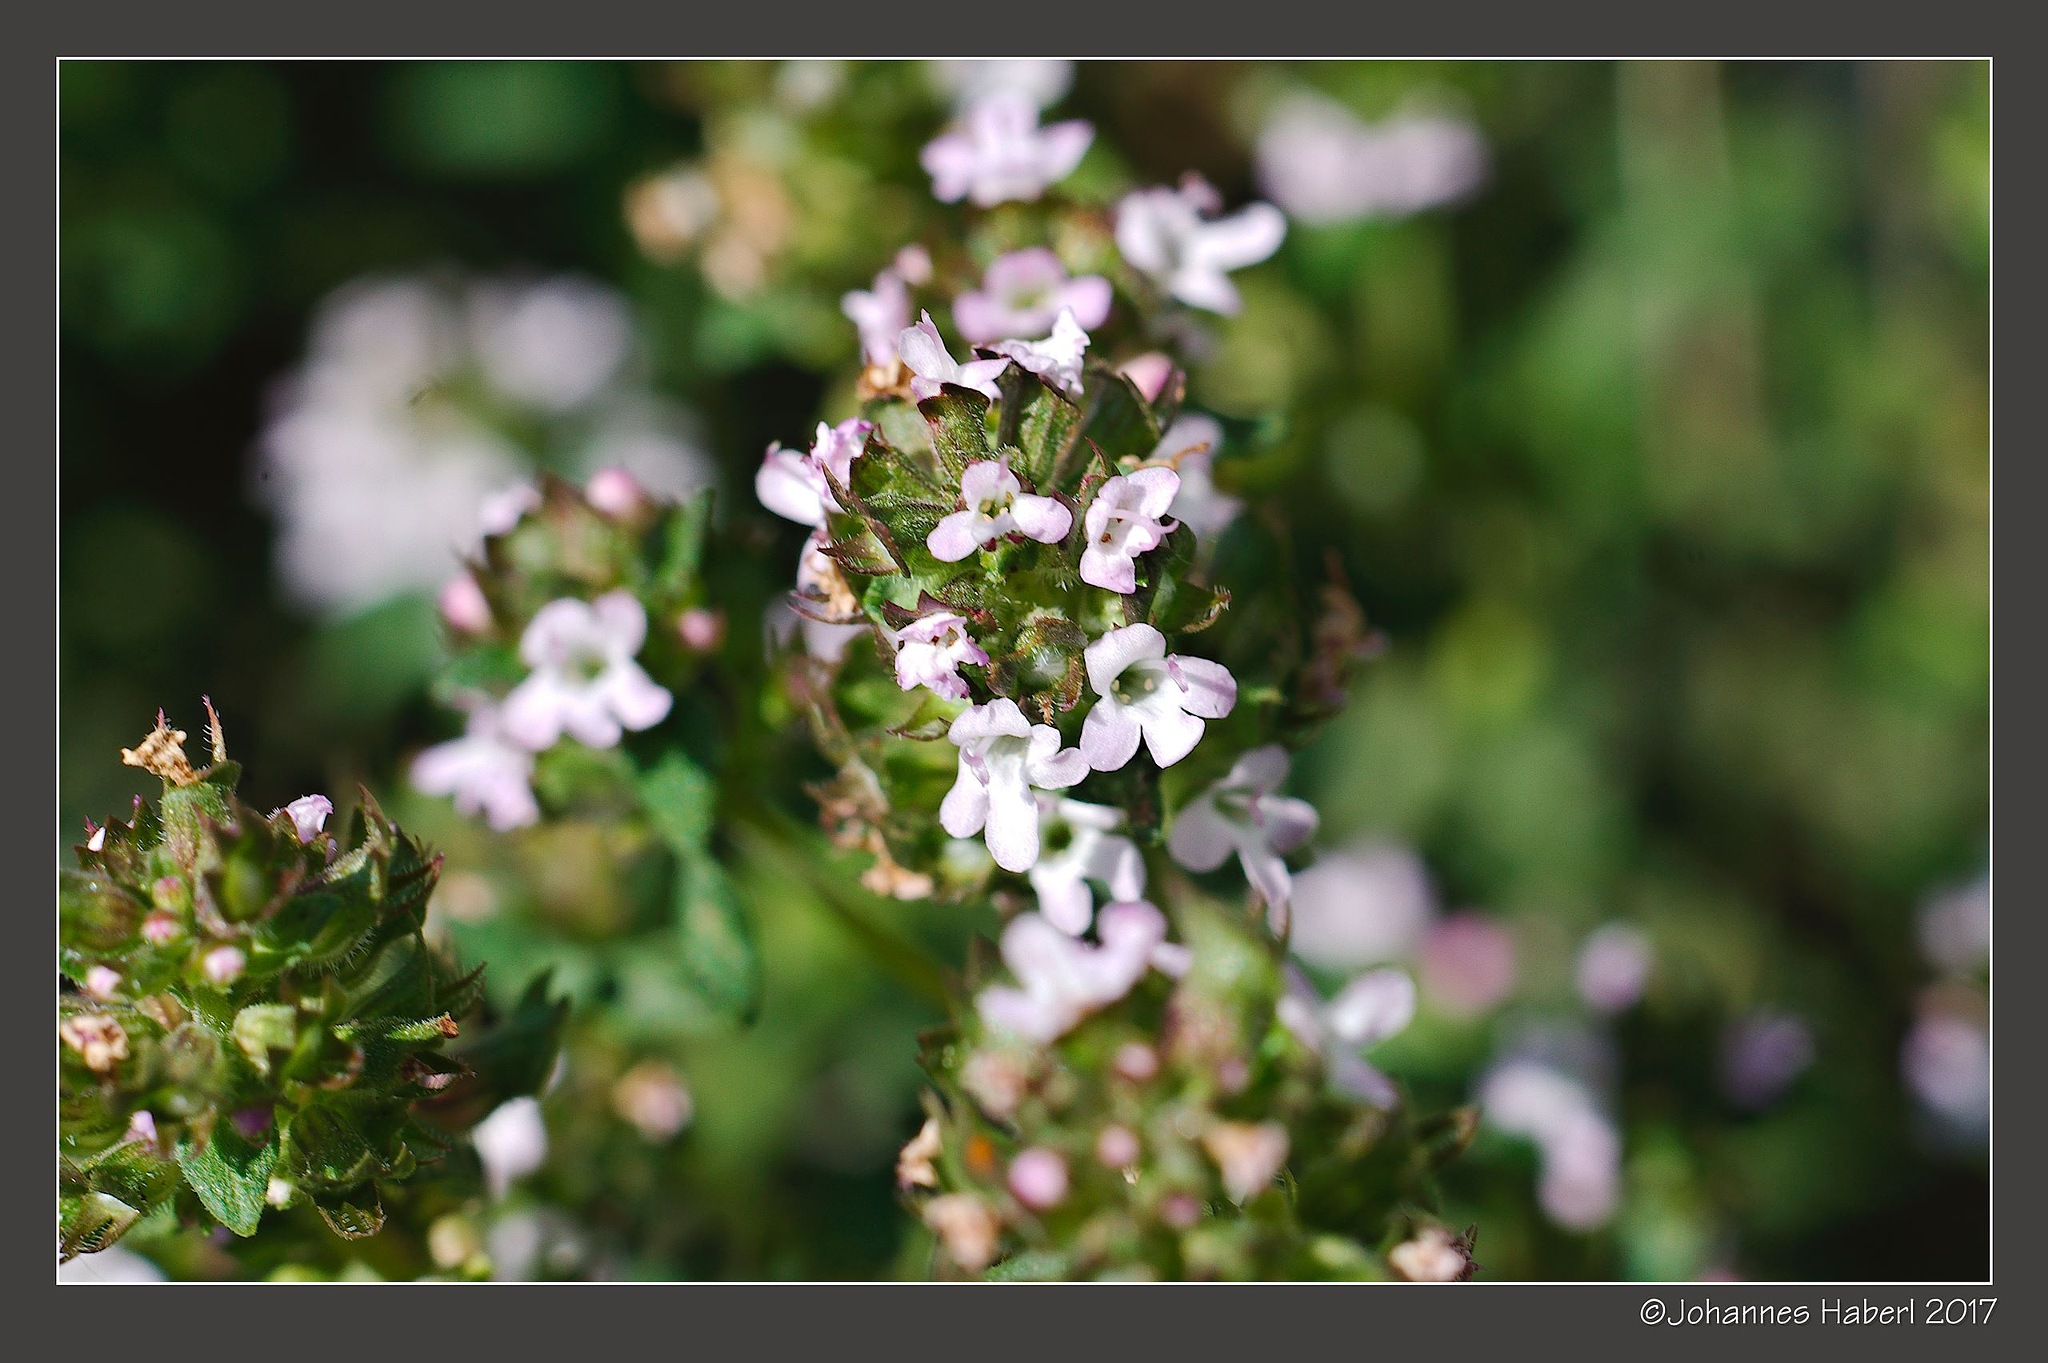 thyme blossoms by Johannes Haberl